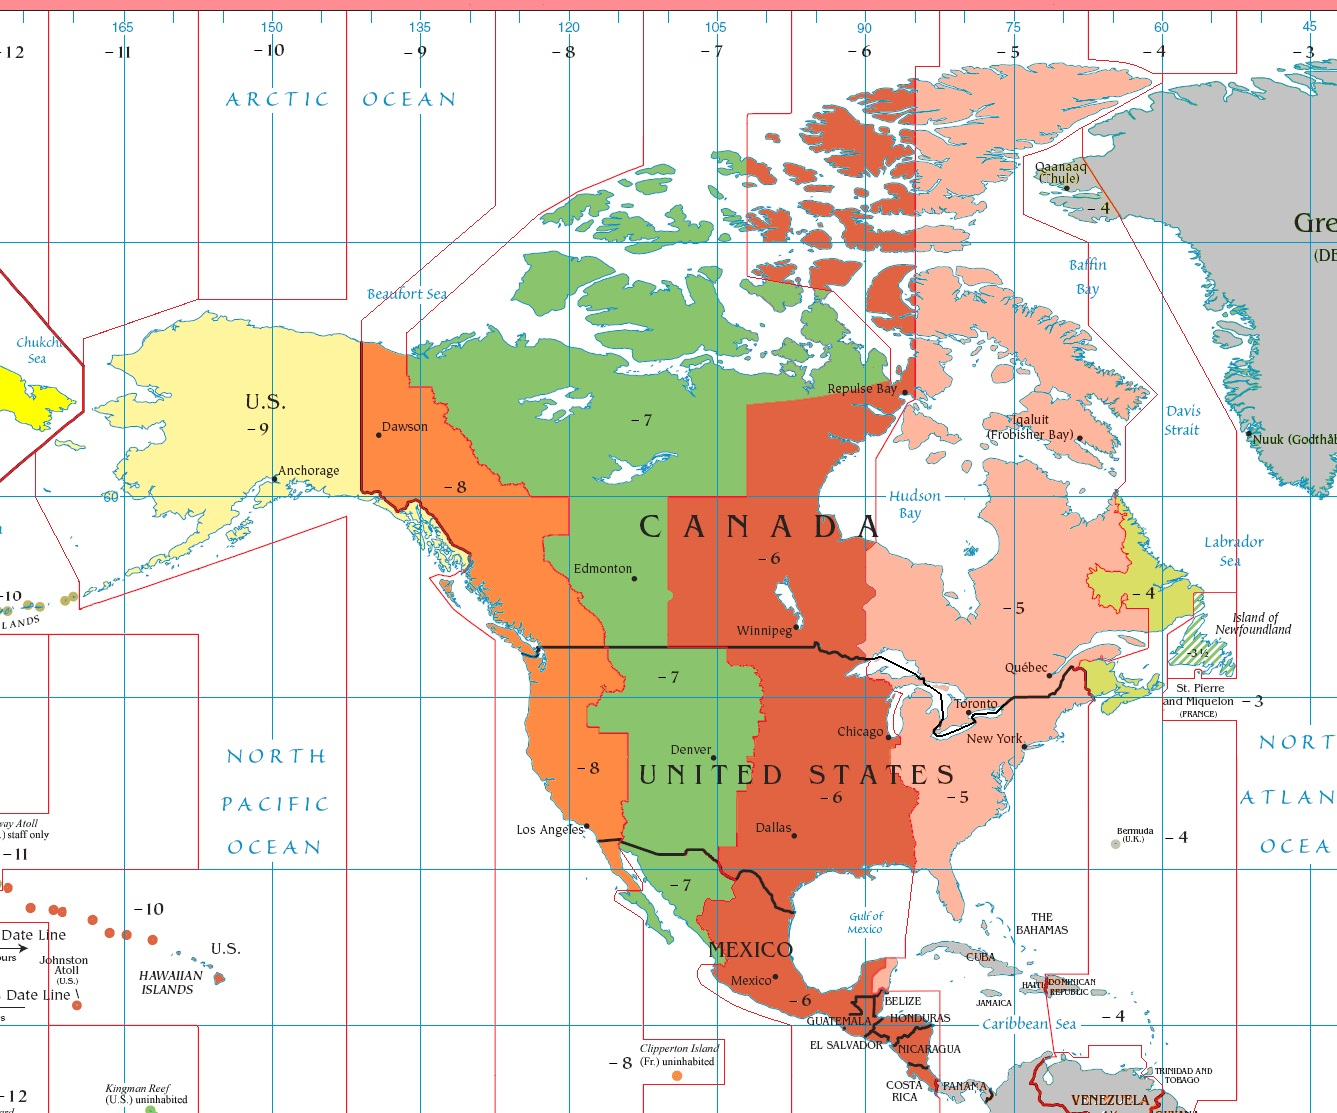 This time zone map of North America/Central America is courtesy of Wikipedia. Thanks Wikipedia!